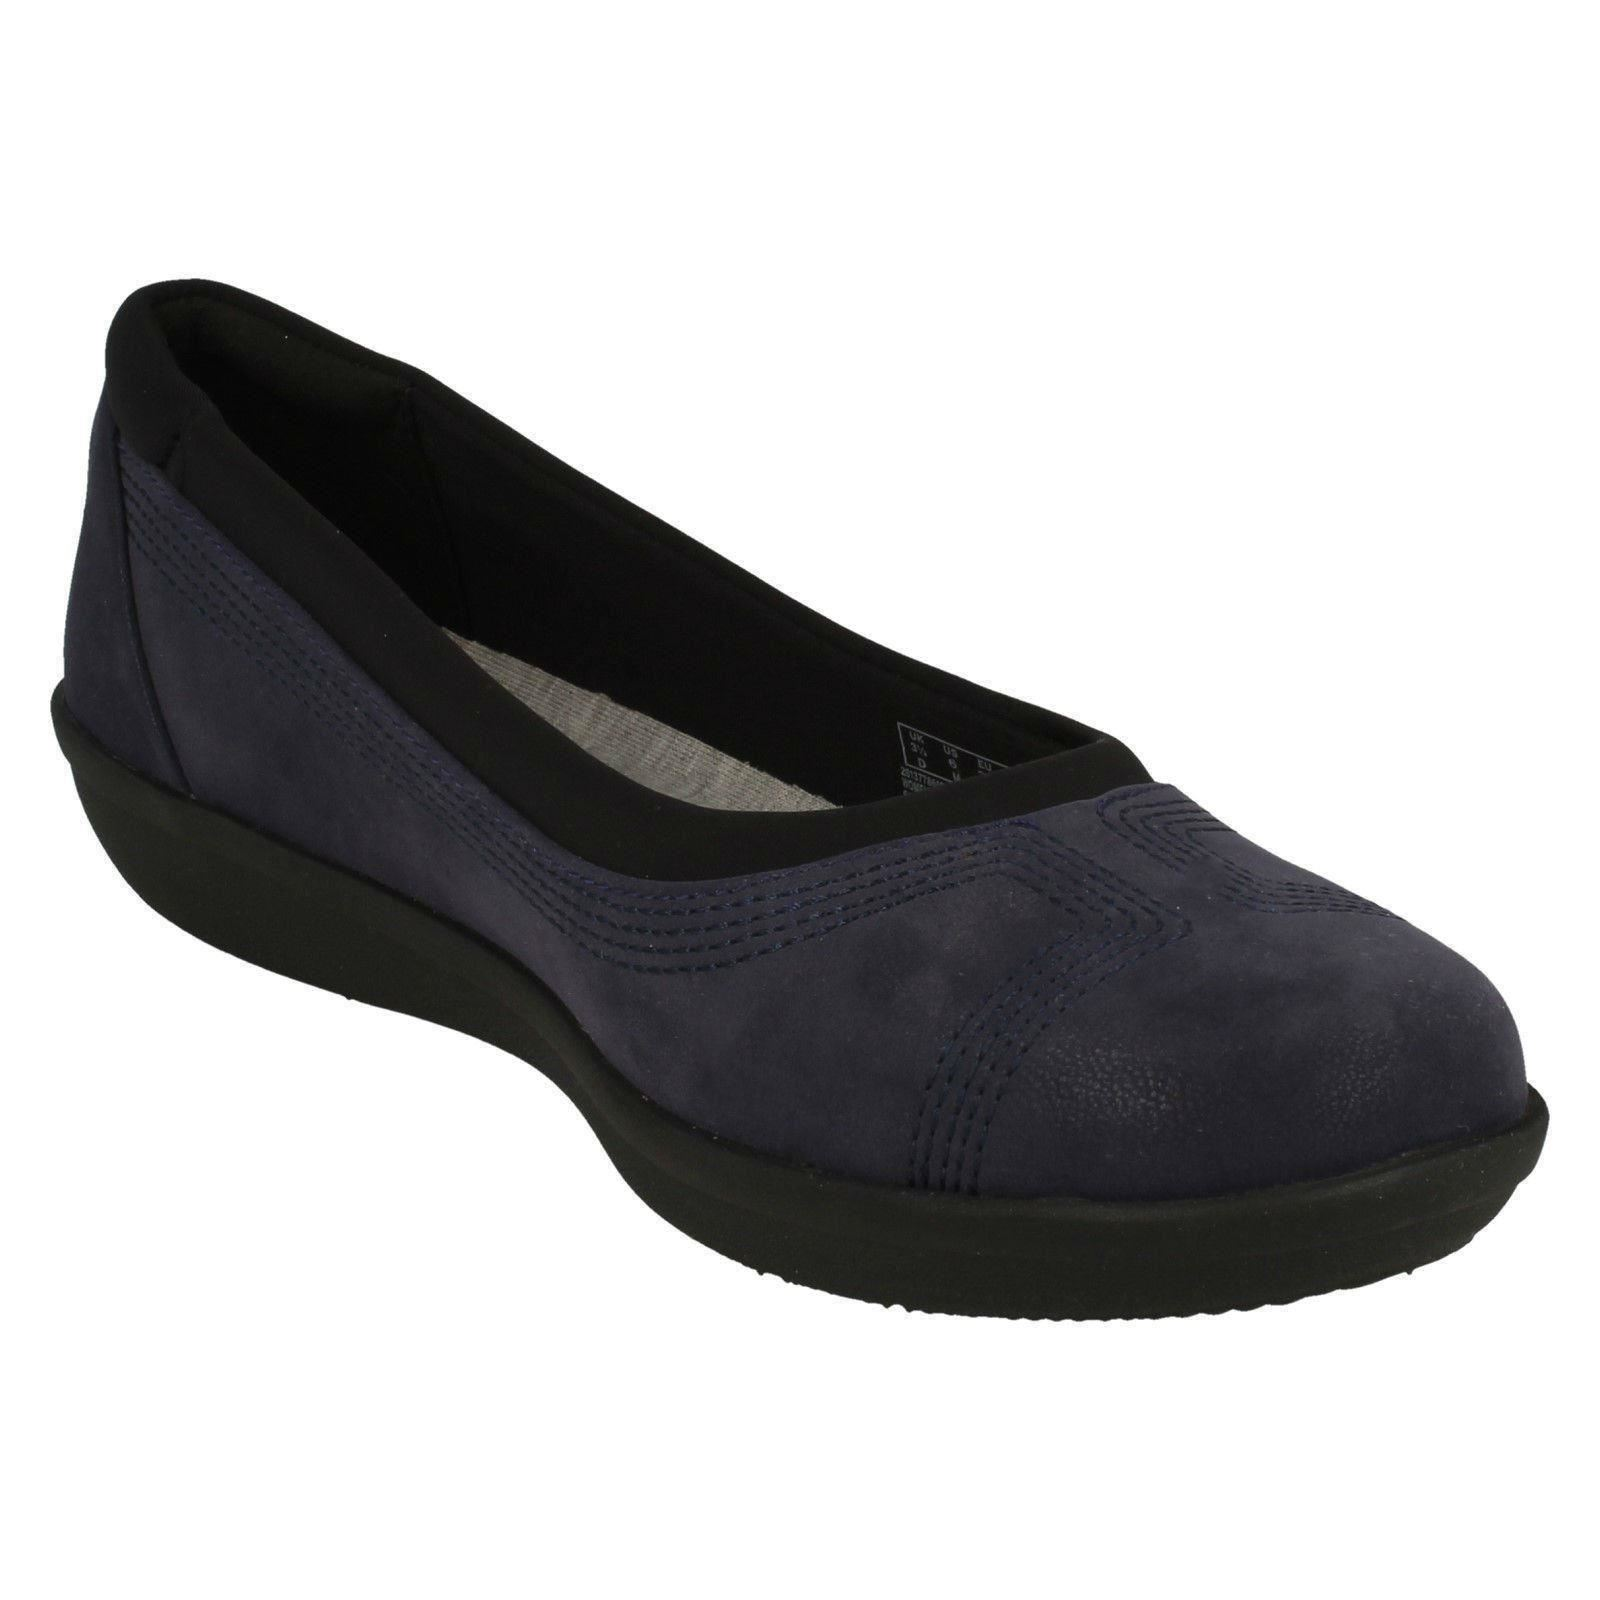 Ladies Clarks Cloud Steppers Flat Textile Rounded Toe Shoes - 'Byla Low'